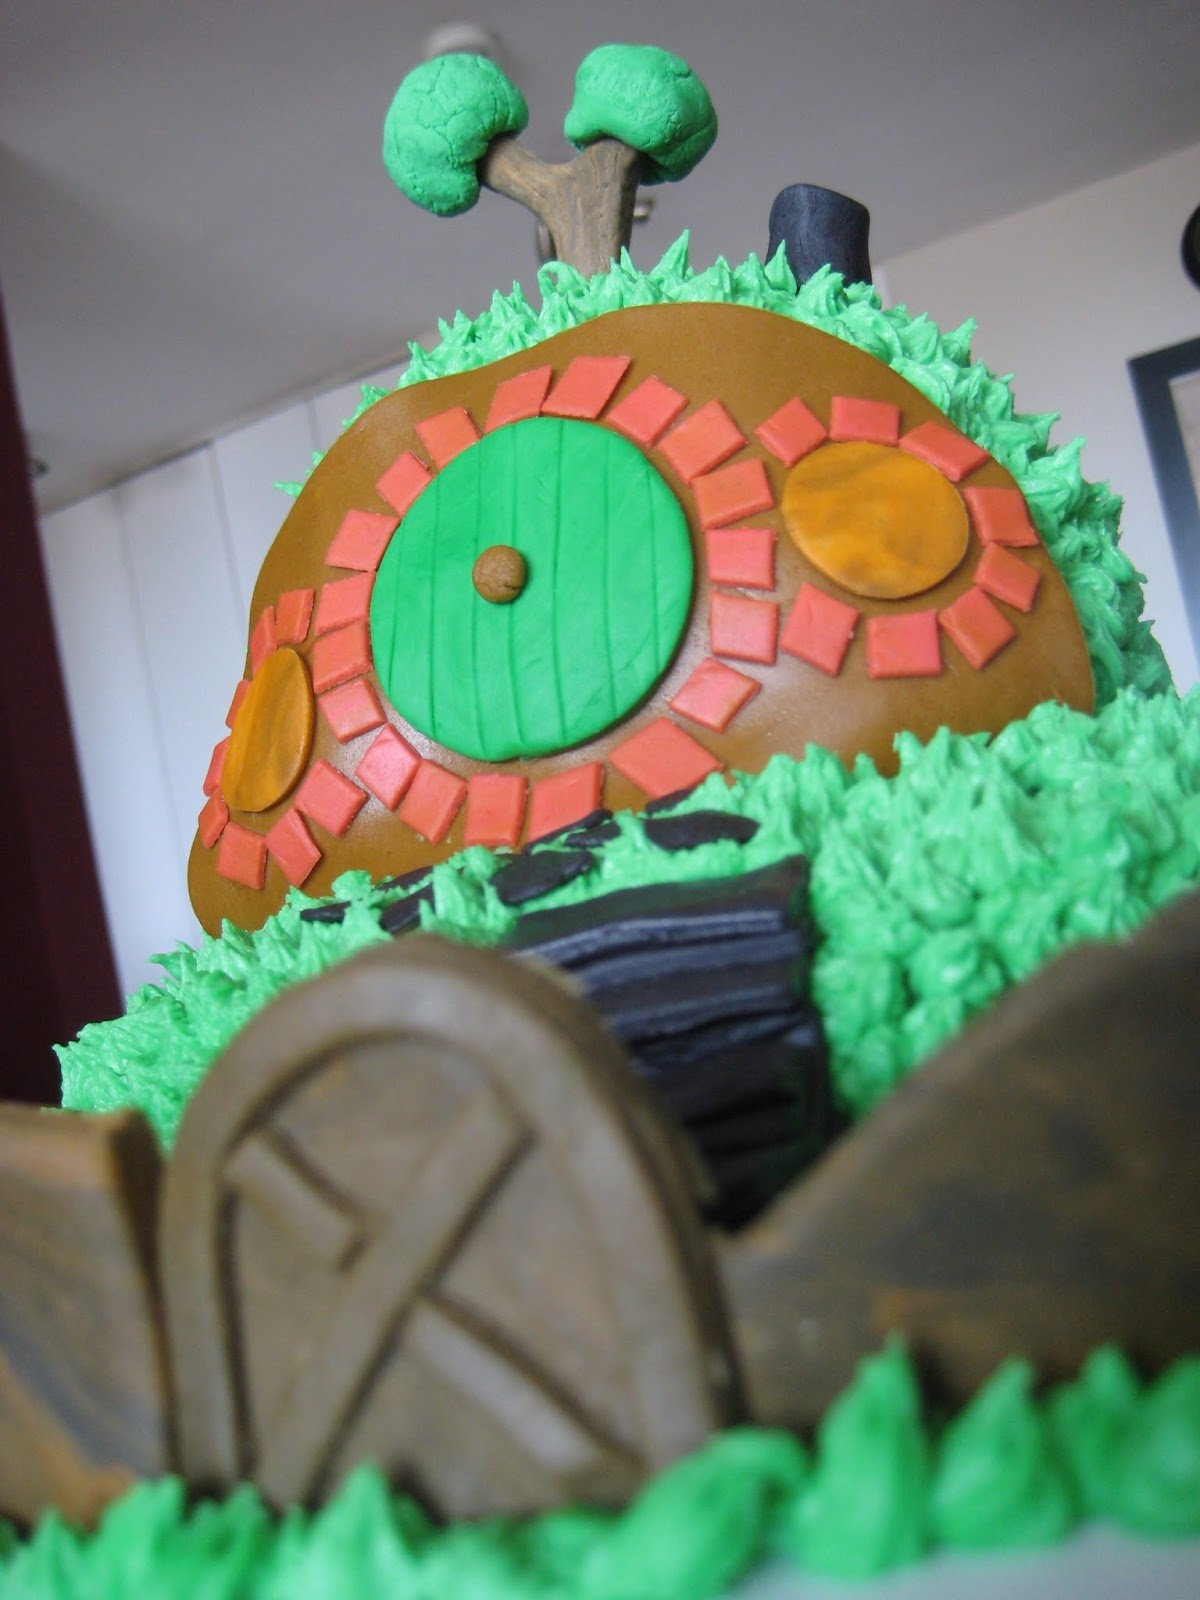 Becky and the Beanstalk: Fondant Decorating Time!